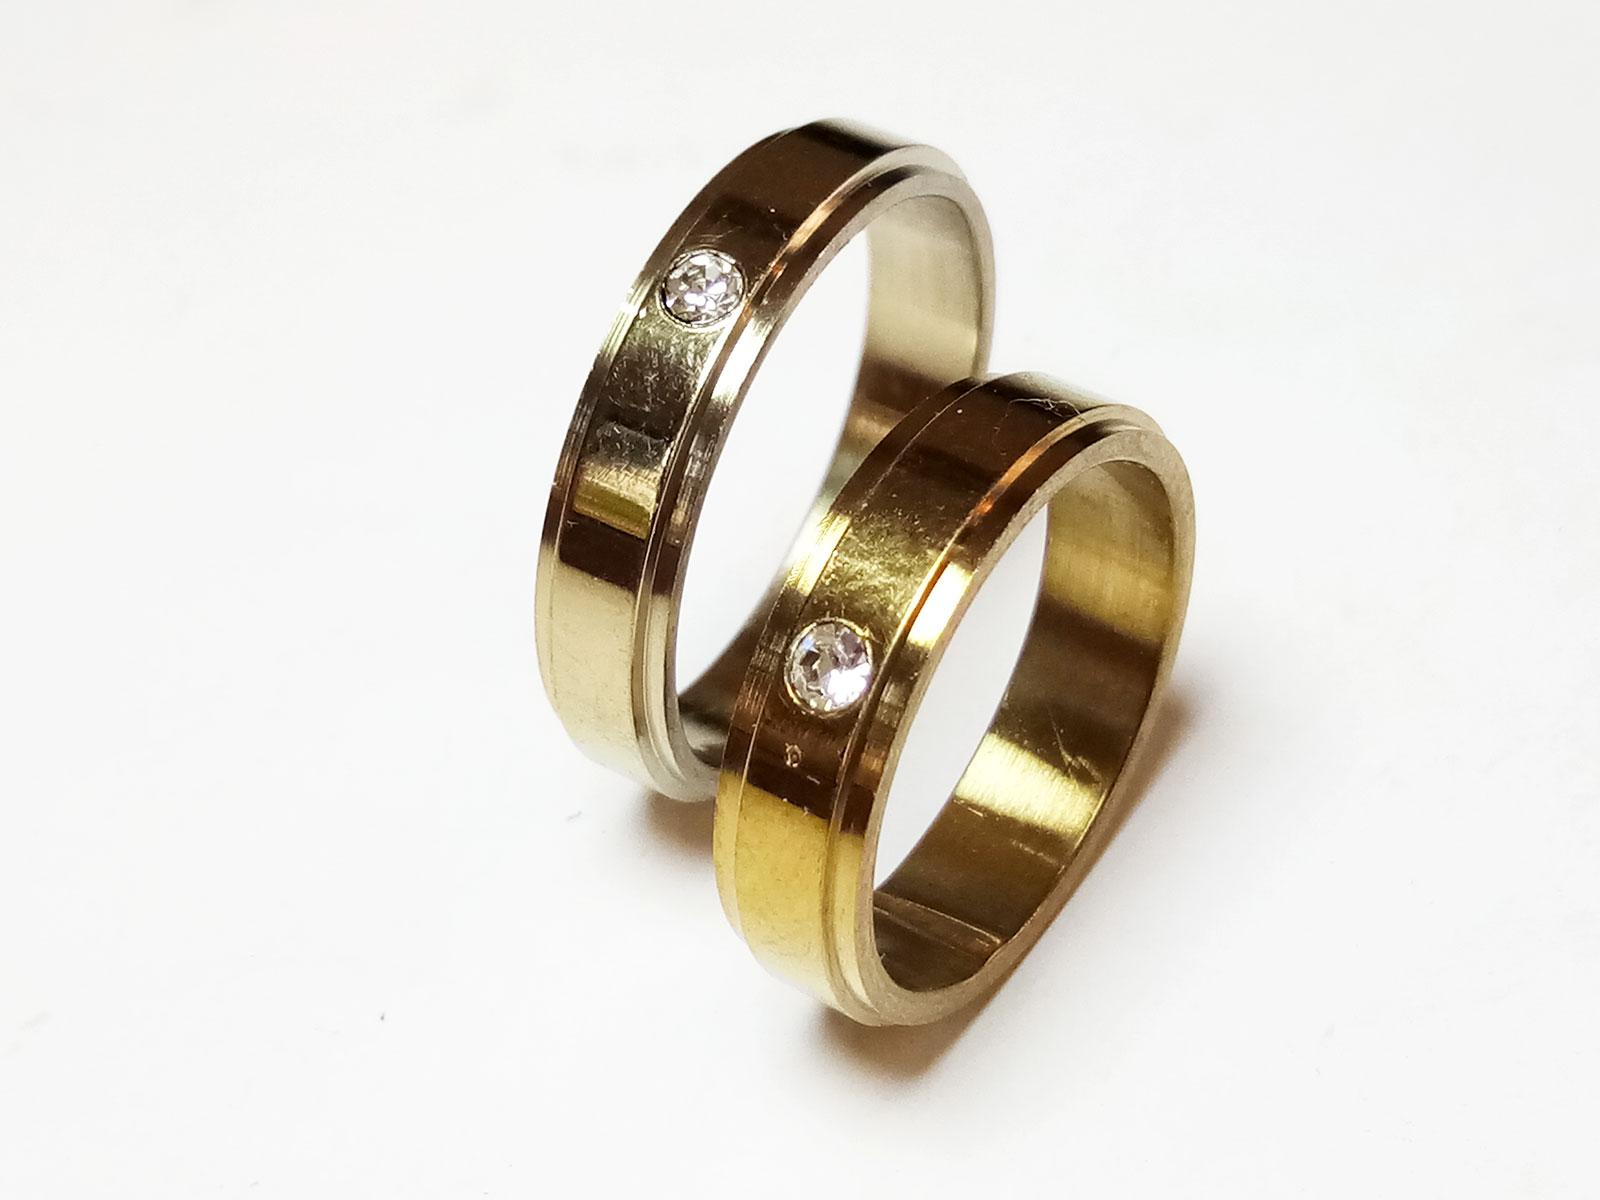 VeE Cincin Single / Couple / Pasangan untuk Tunangan / Nikahan Titanium Stainless Steel Gold M1